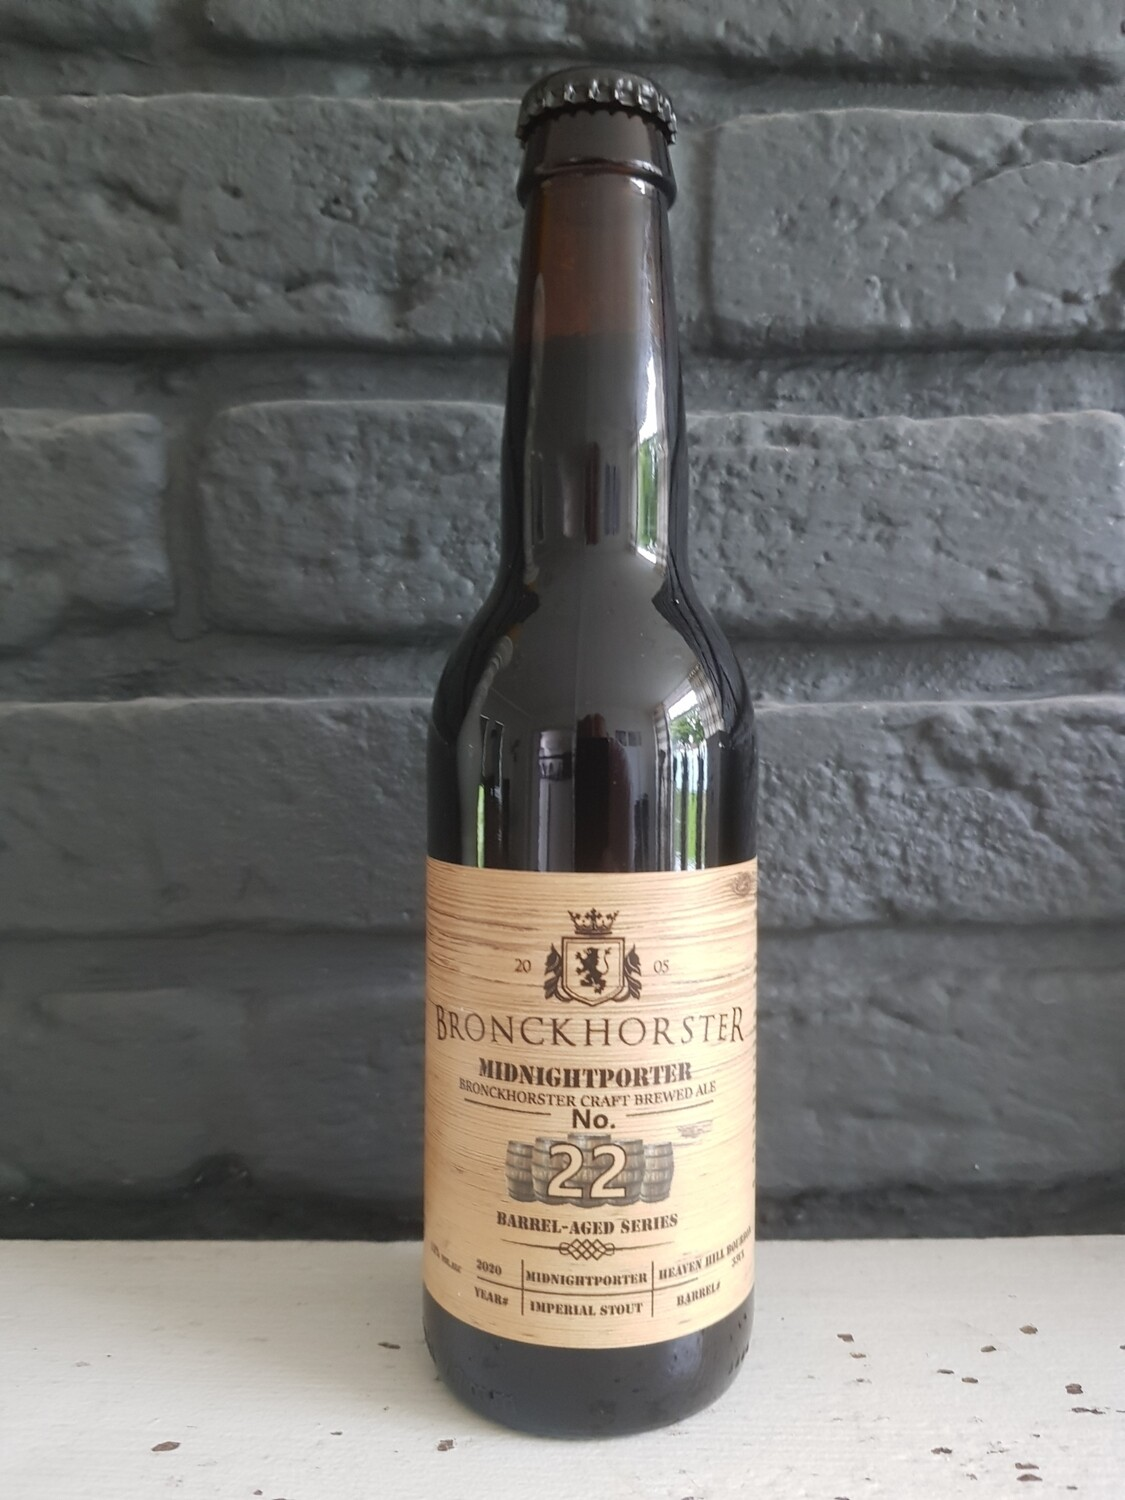 Midnightporter Barrel Aged series 22